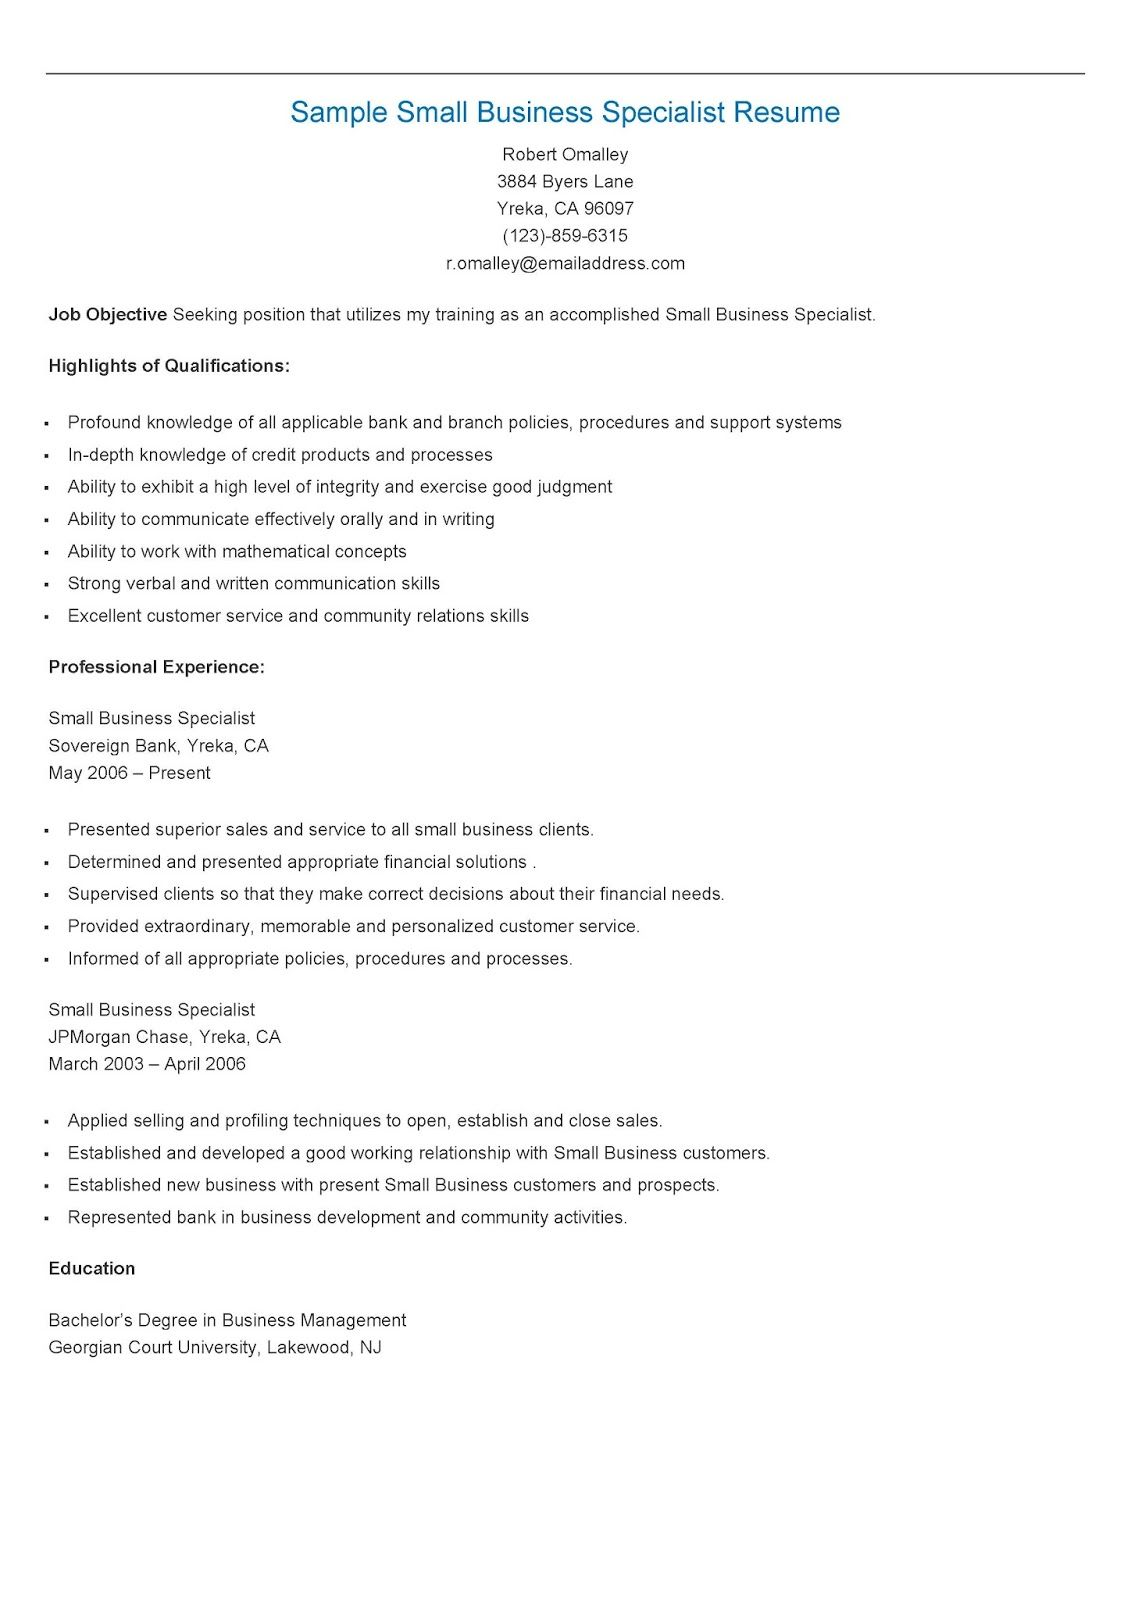 Sample Small Business Specialist Resume Resame Pinterest